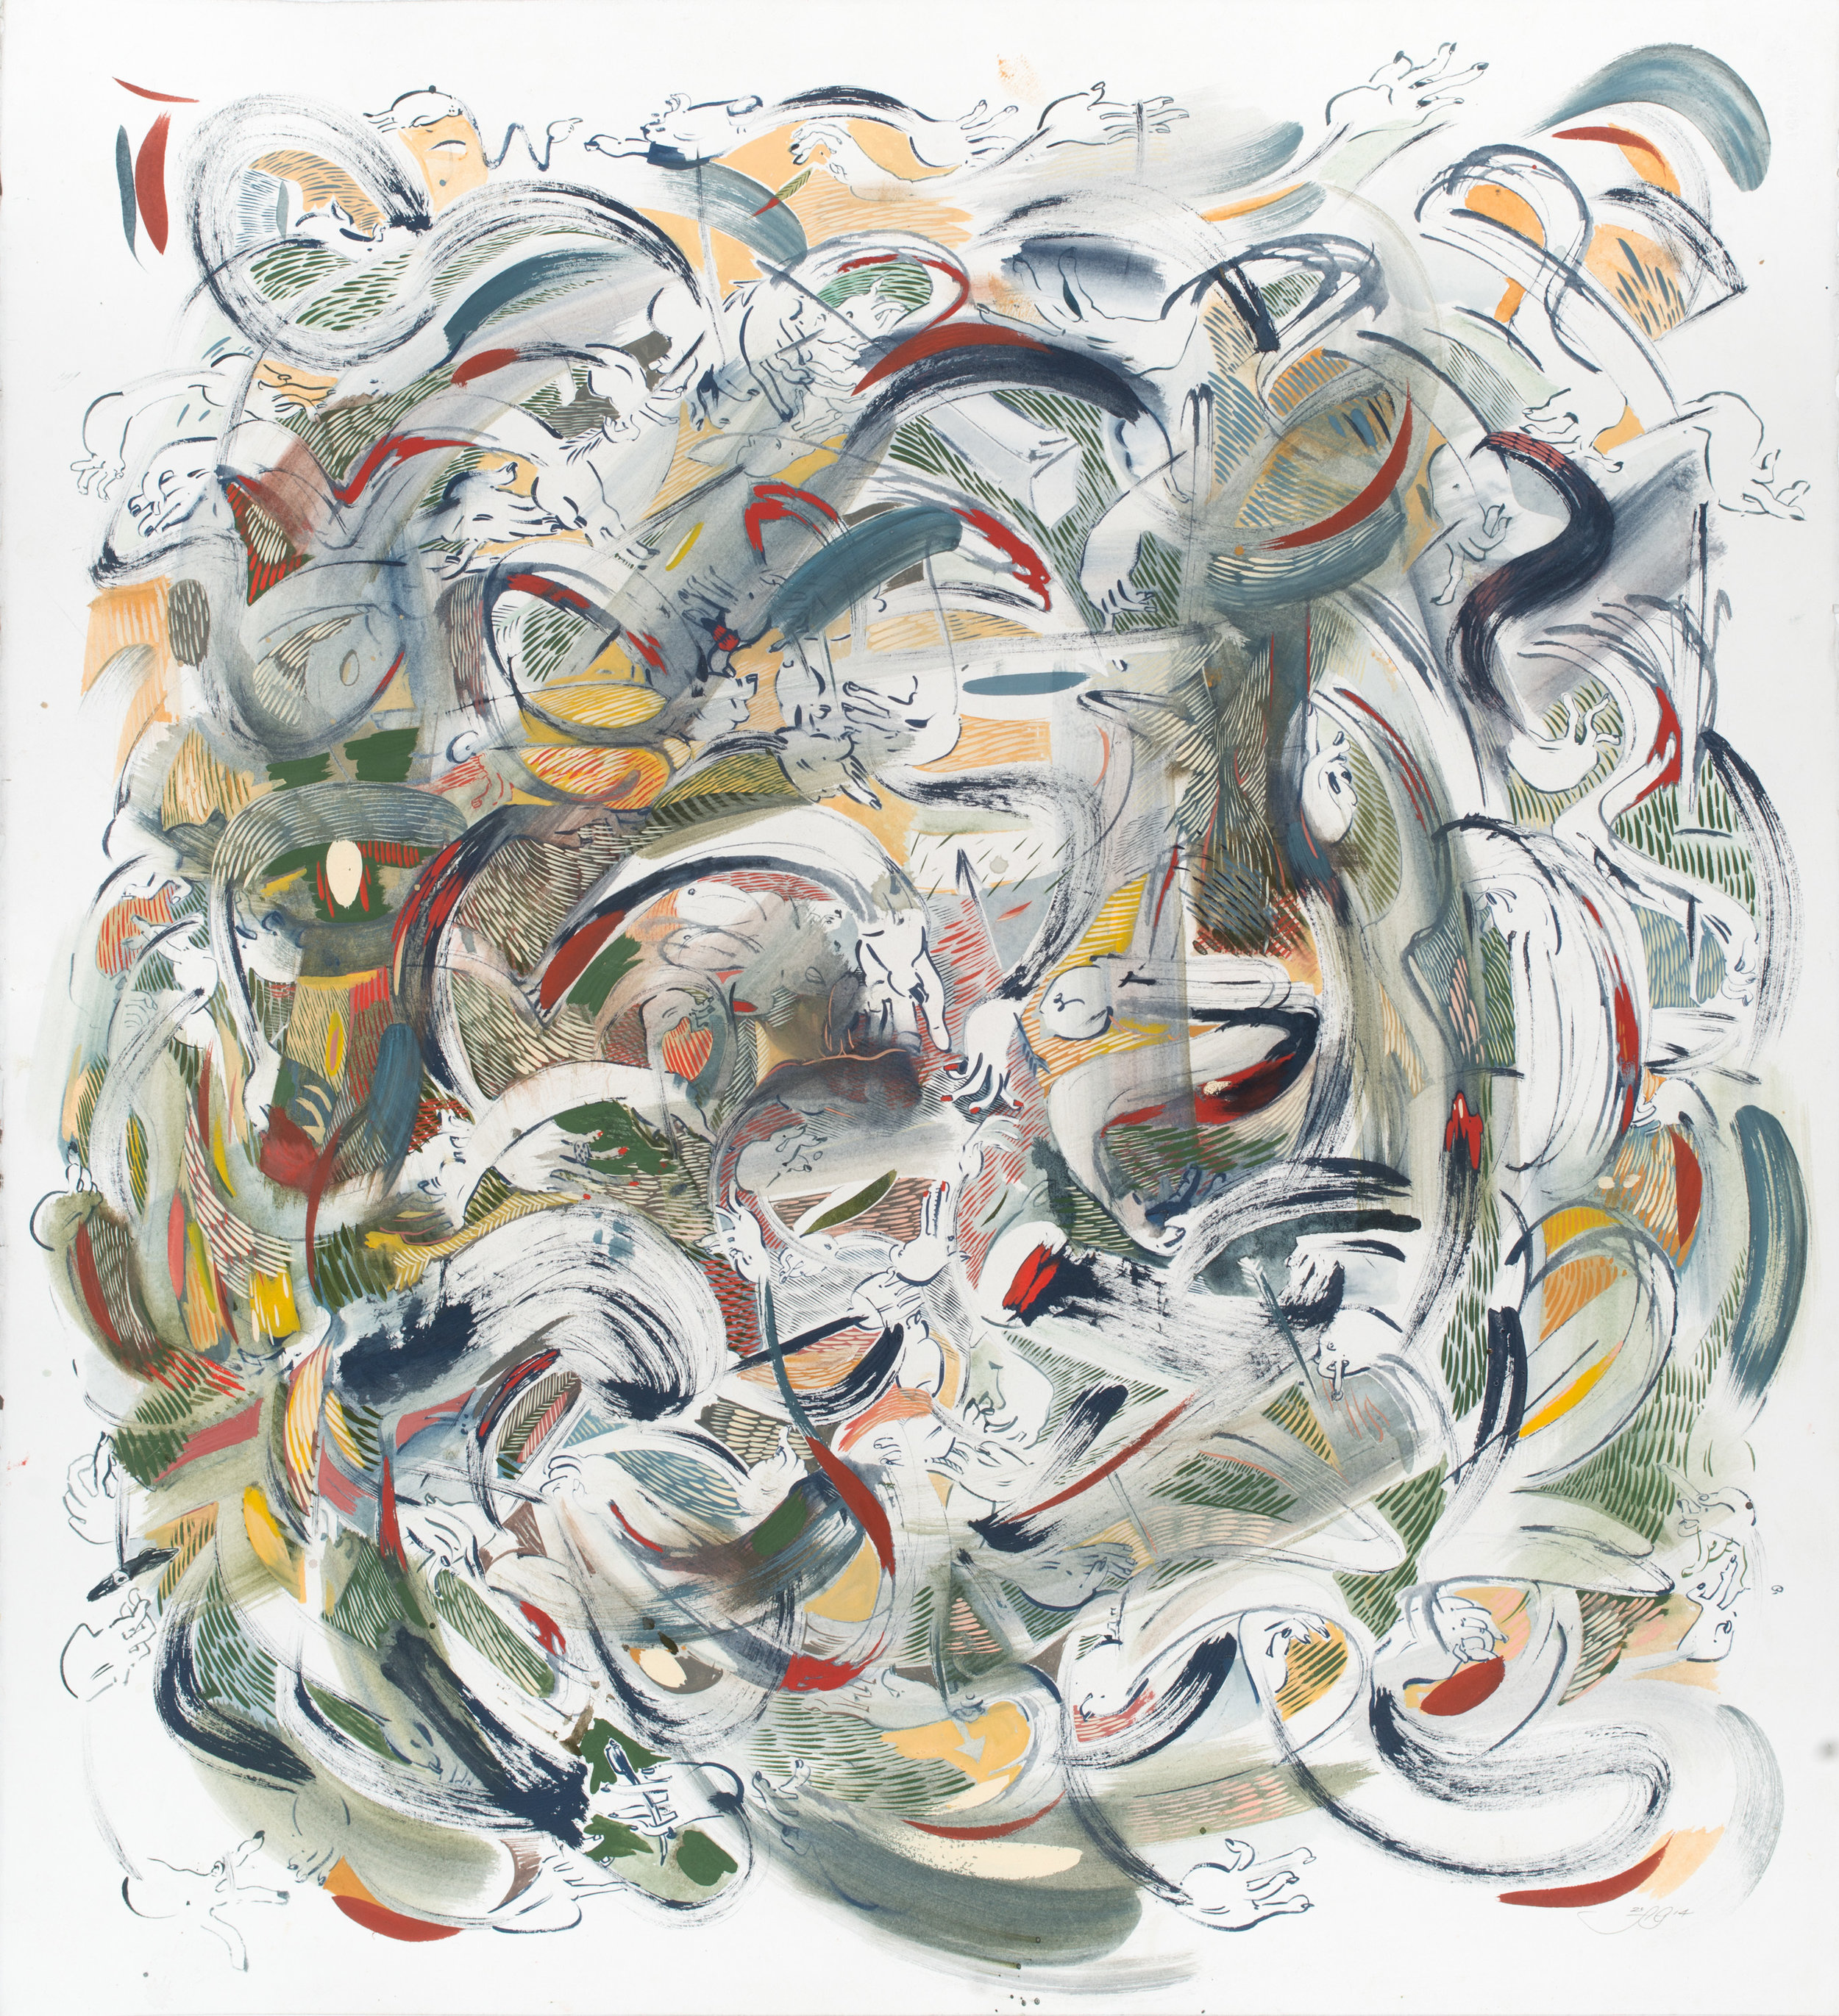 Undertoe , 2014 Gouache and ink on paper 25 1/4 x 27 1/4 inches